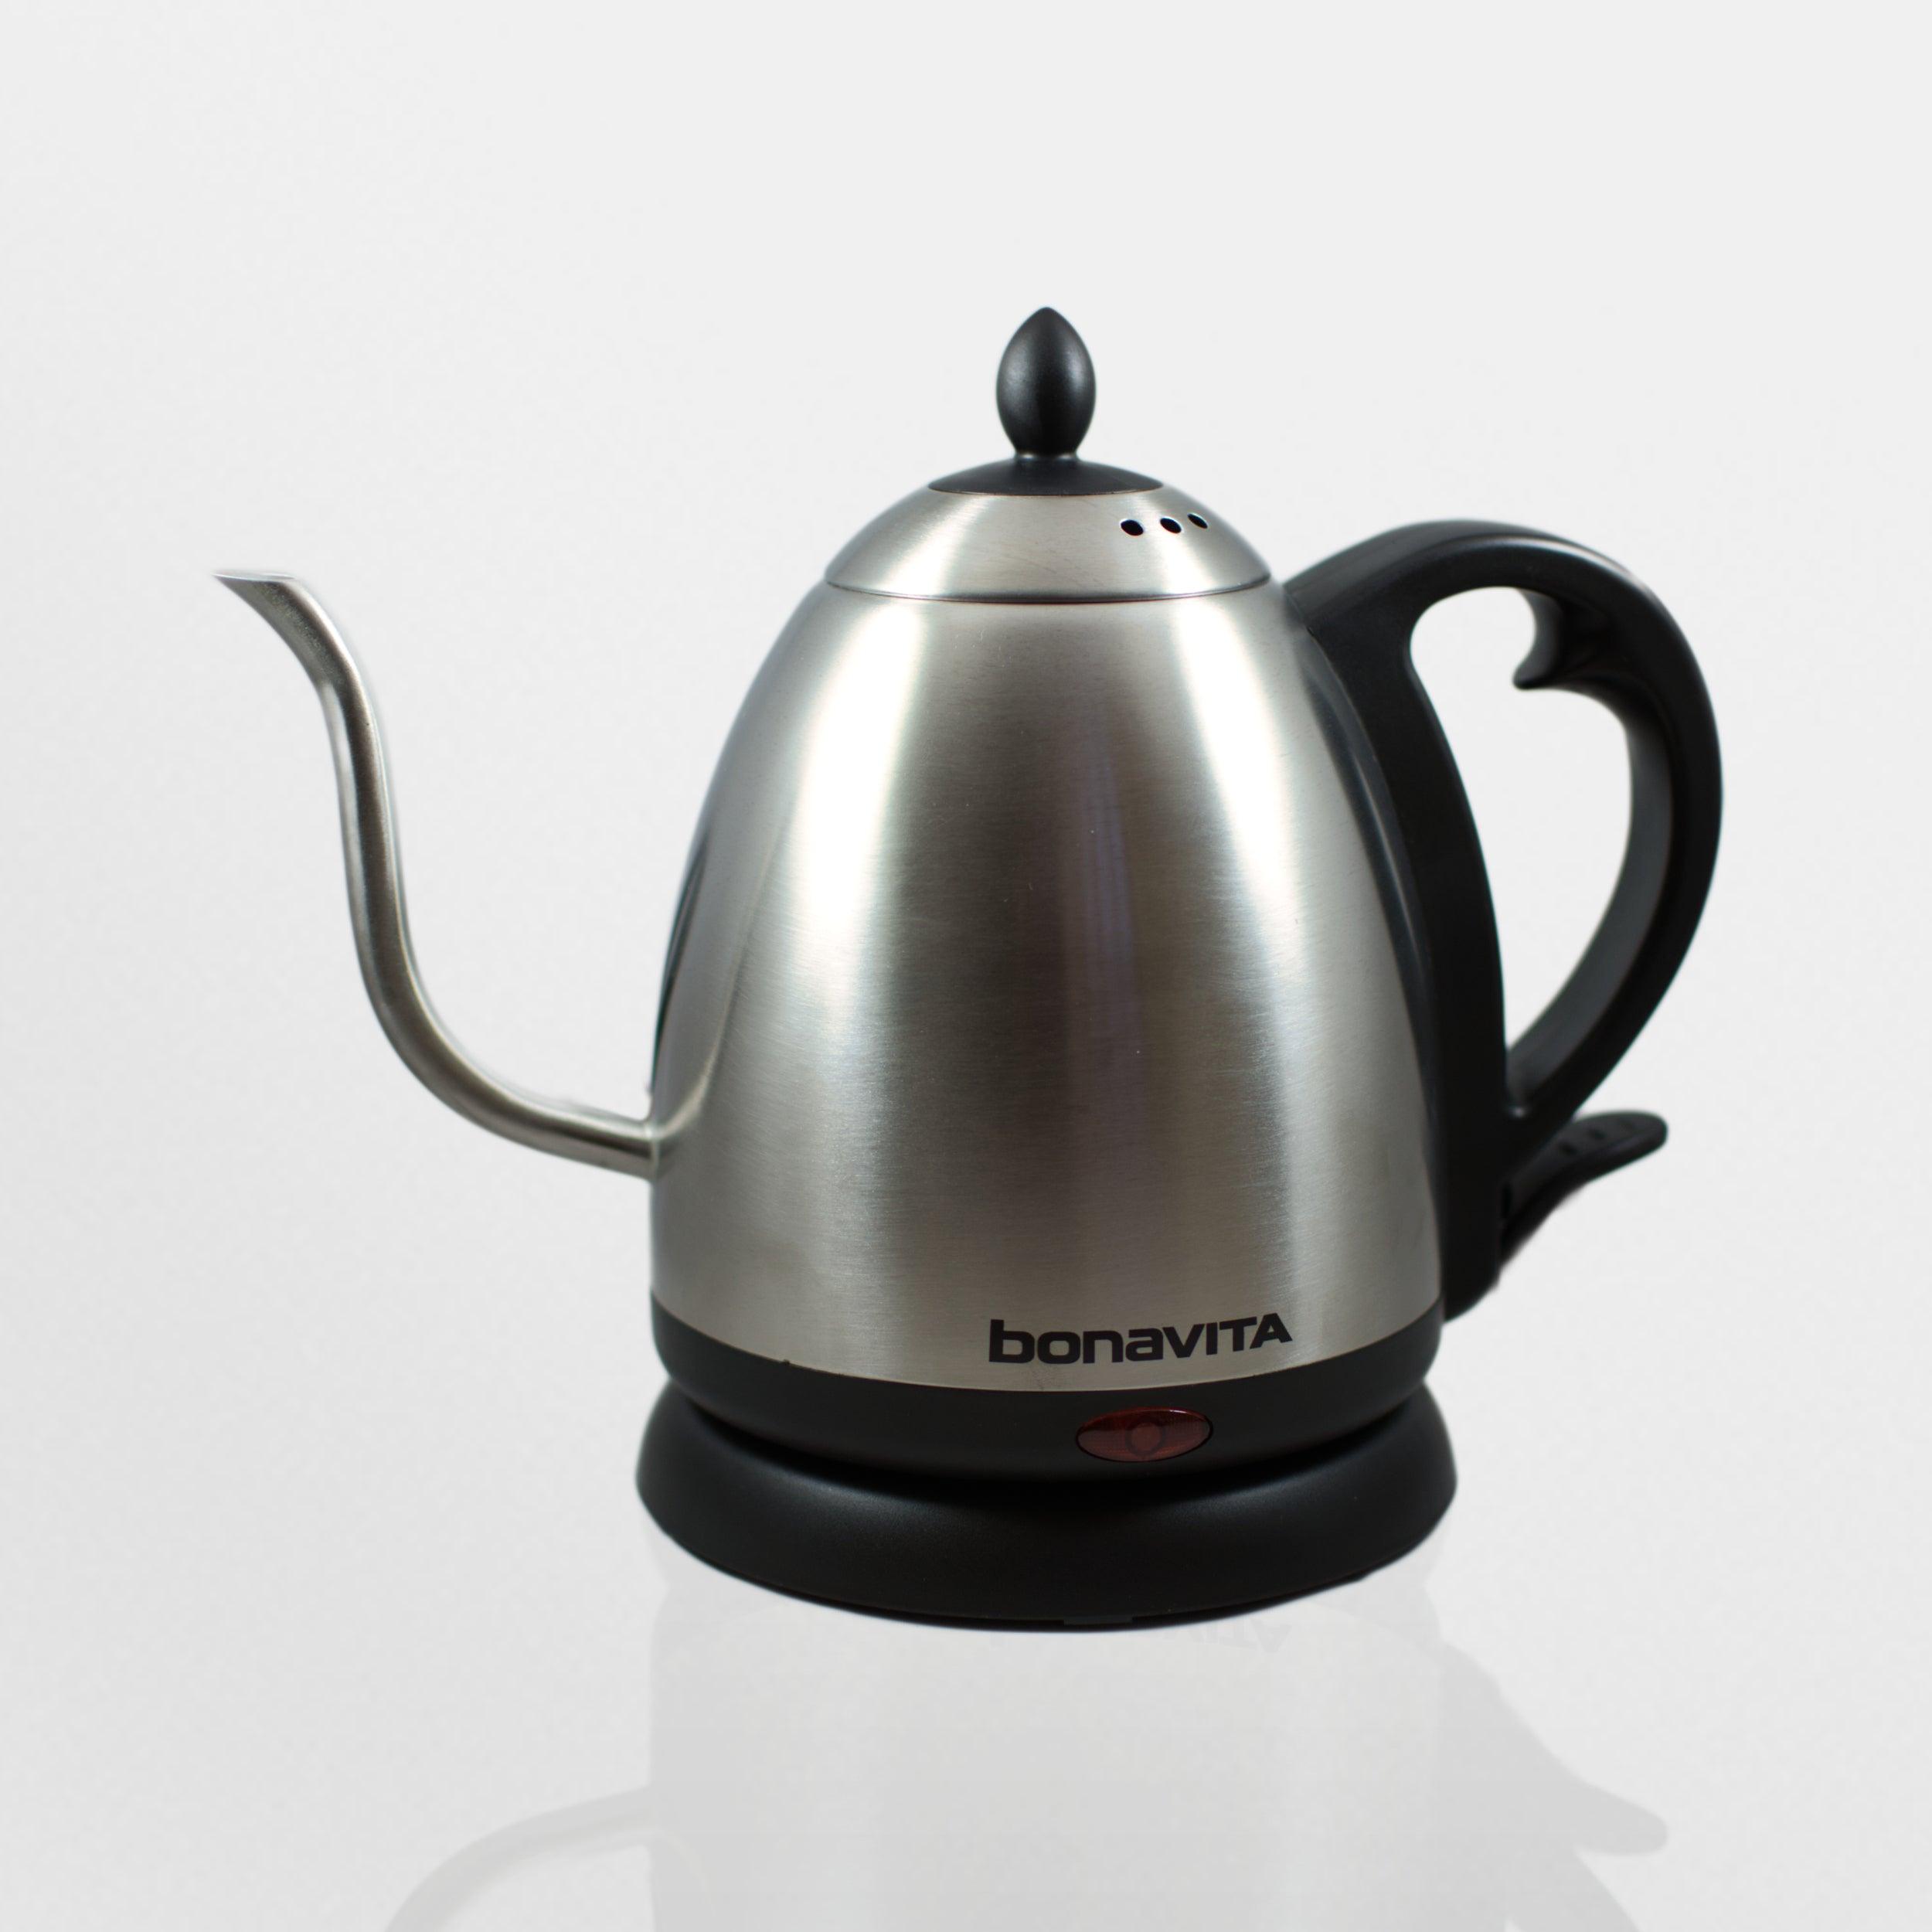 Bonavita Electric Pouring Kettle